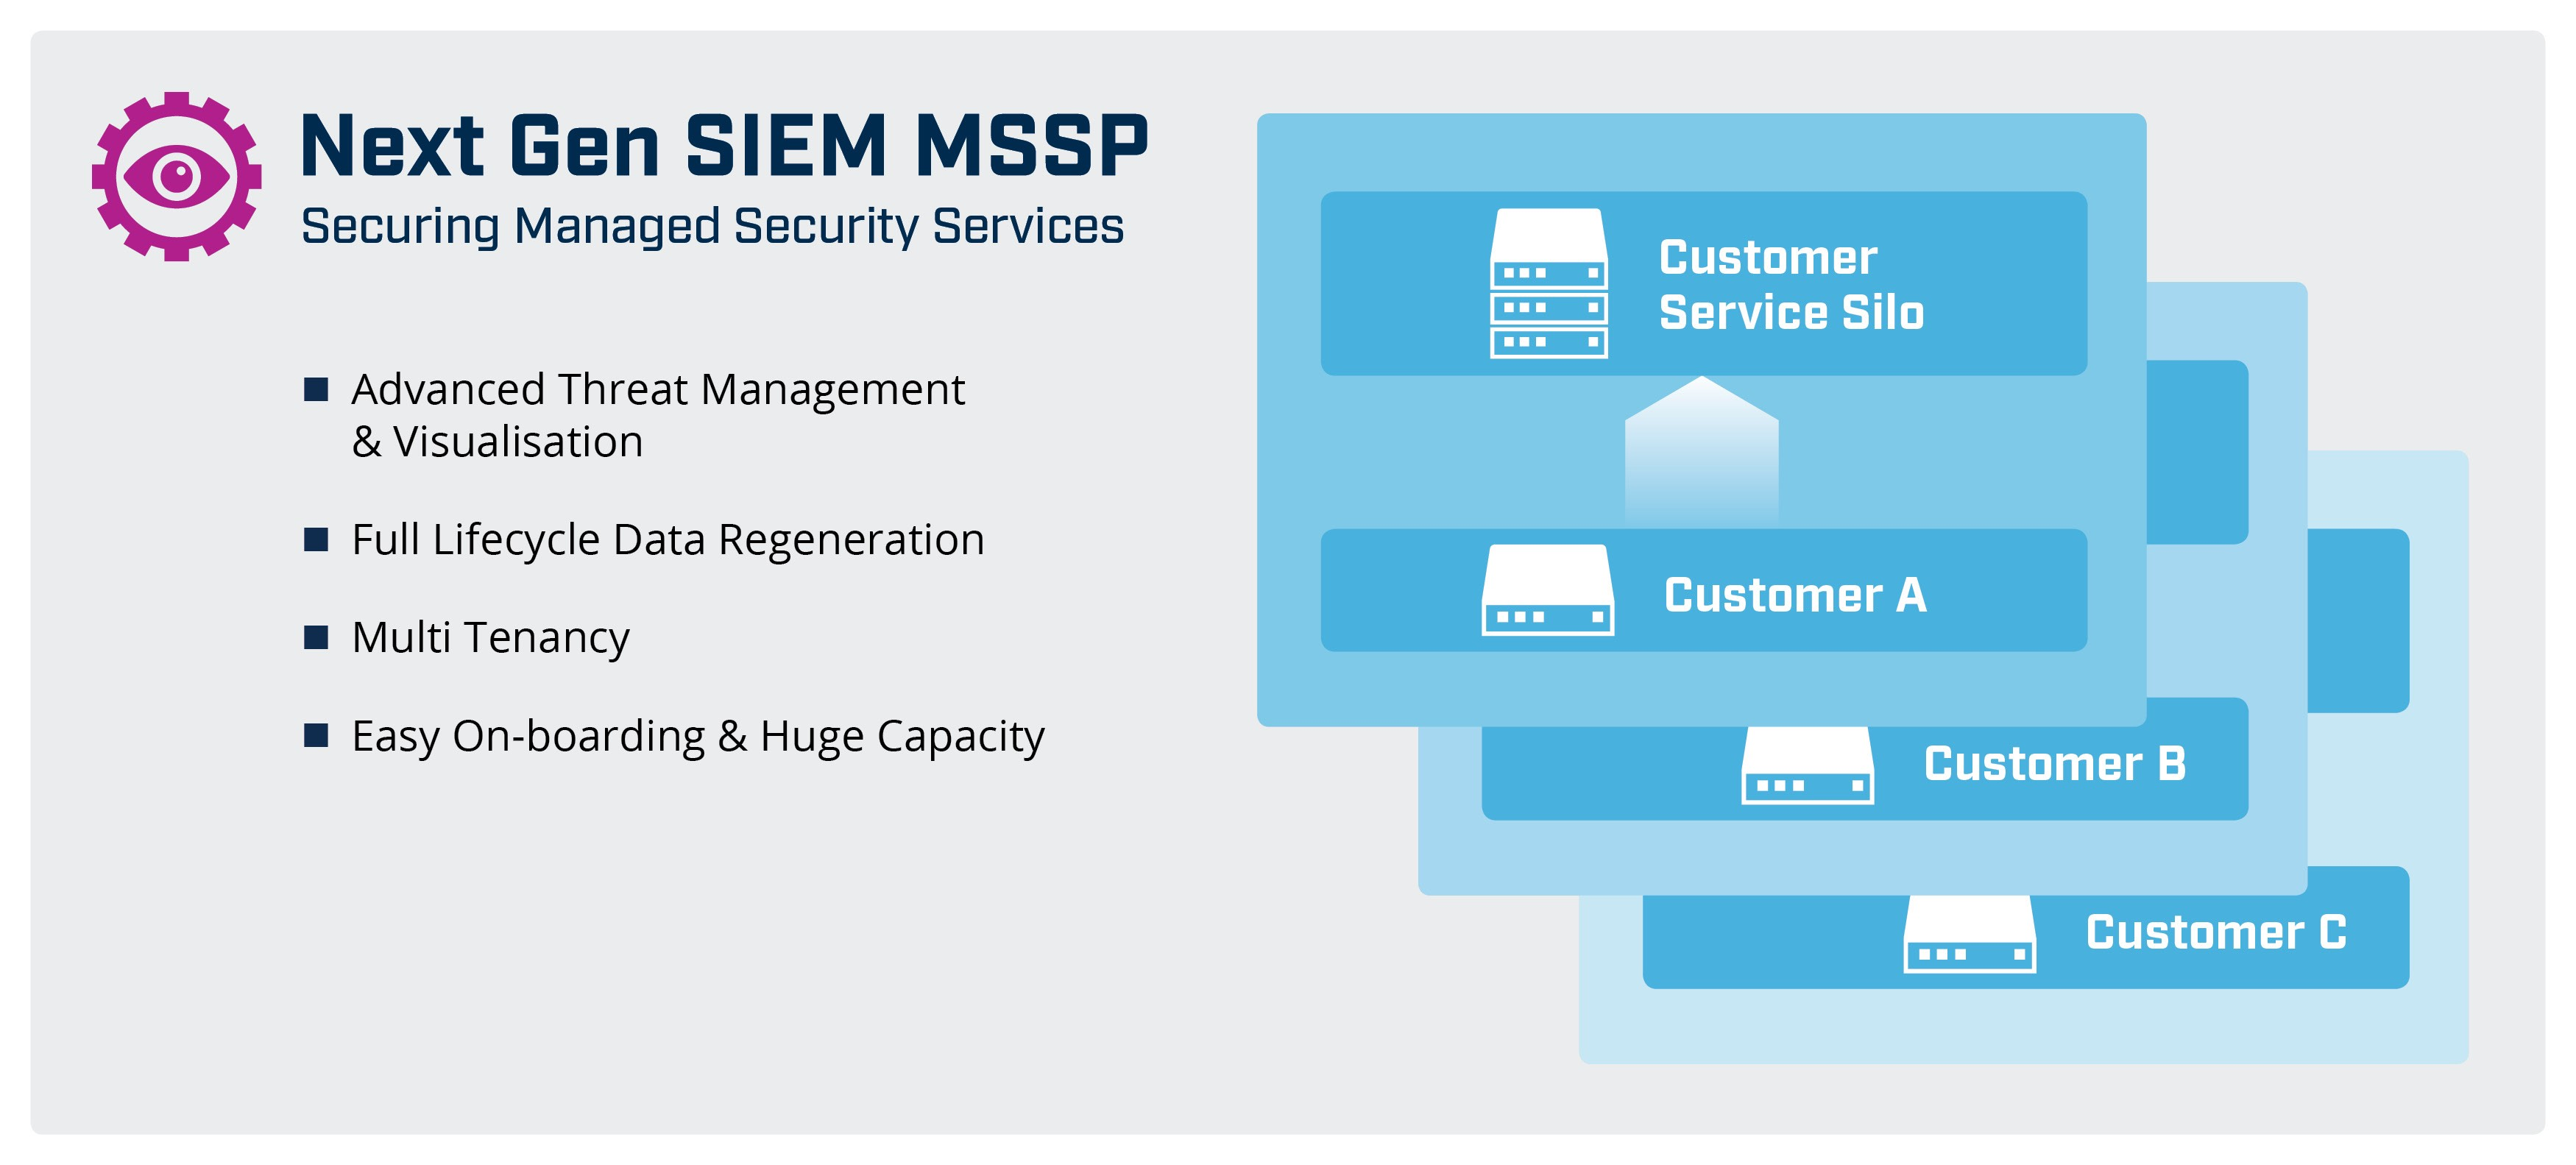 Next Gen SIEM MSSP the foundation of managed security services